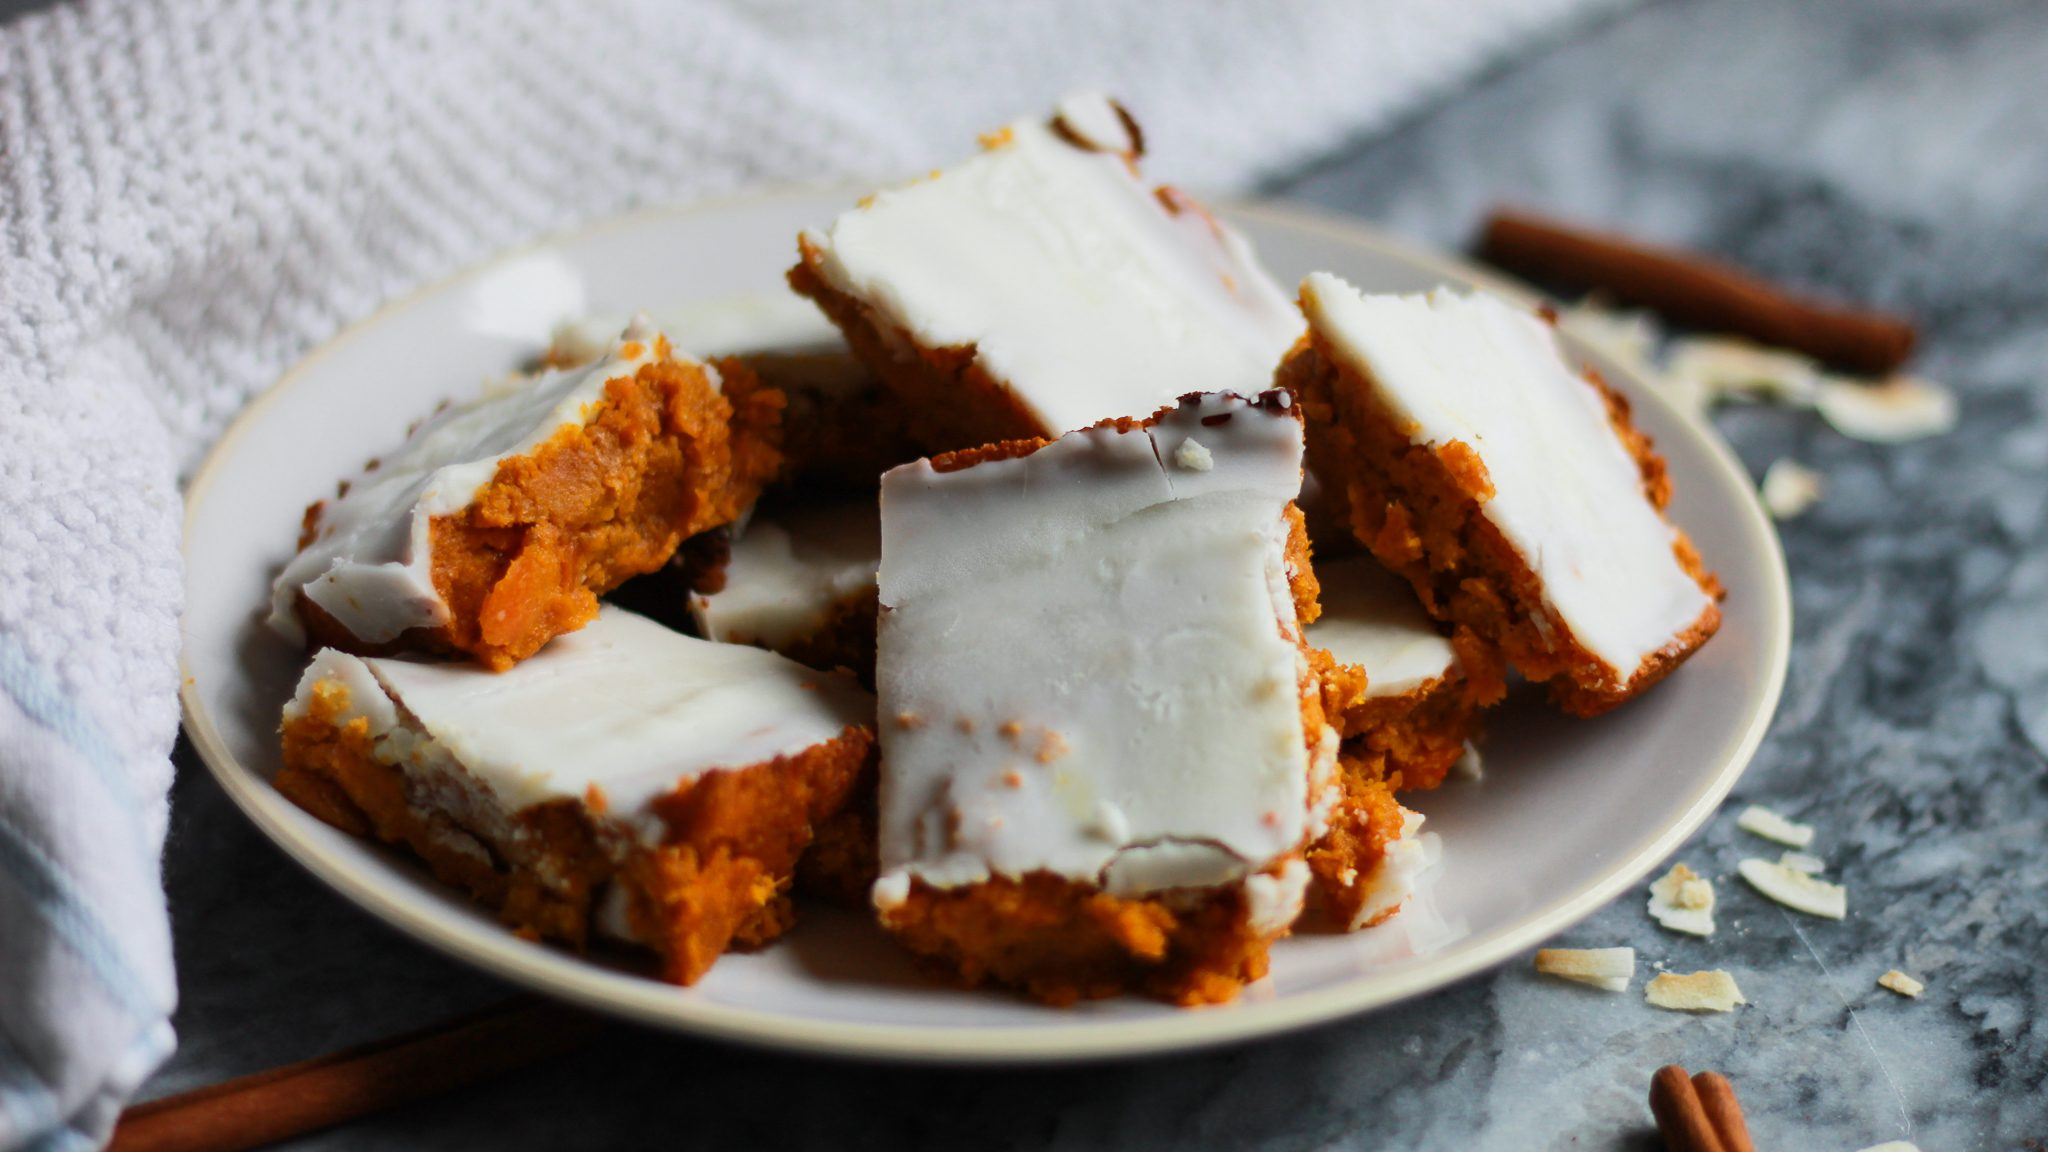 These vegan carrot cake bars packed with spice and sweetness! They're completely paleo, gluten free, and made with natural sweetener for a decadent spring dessert!